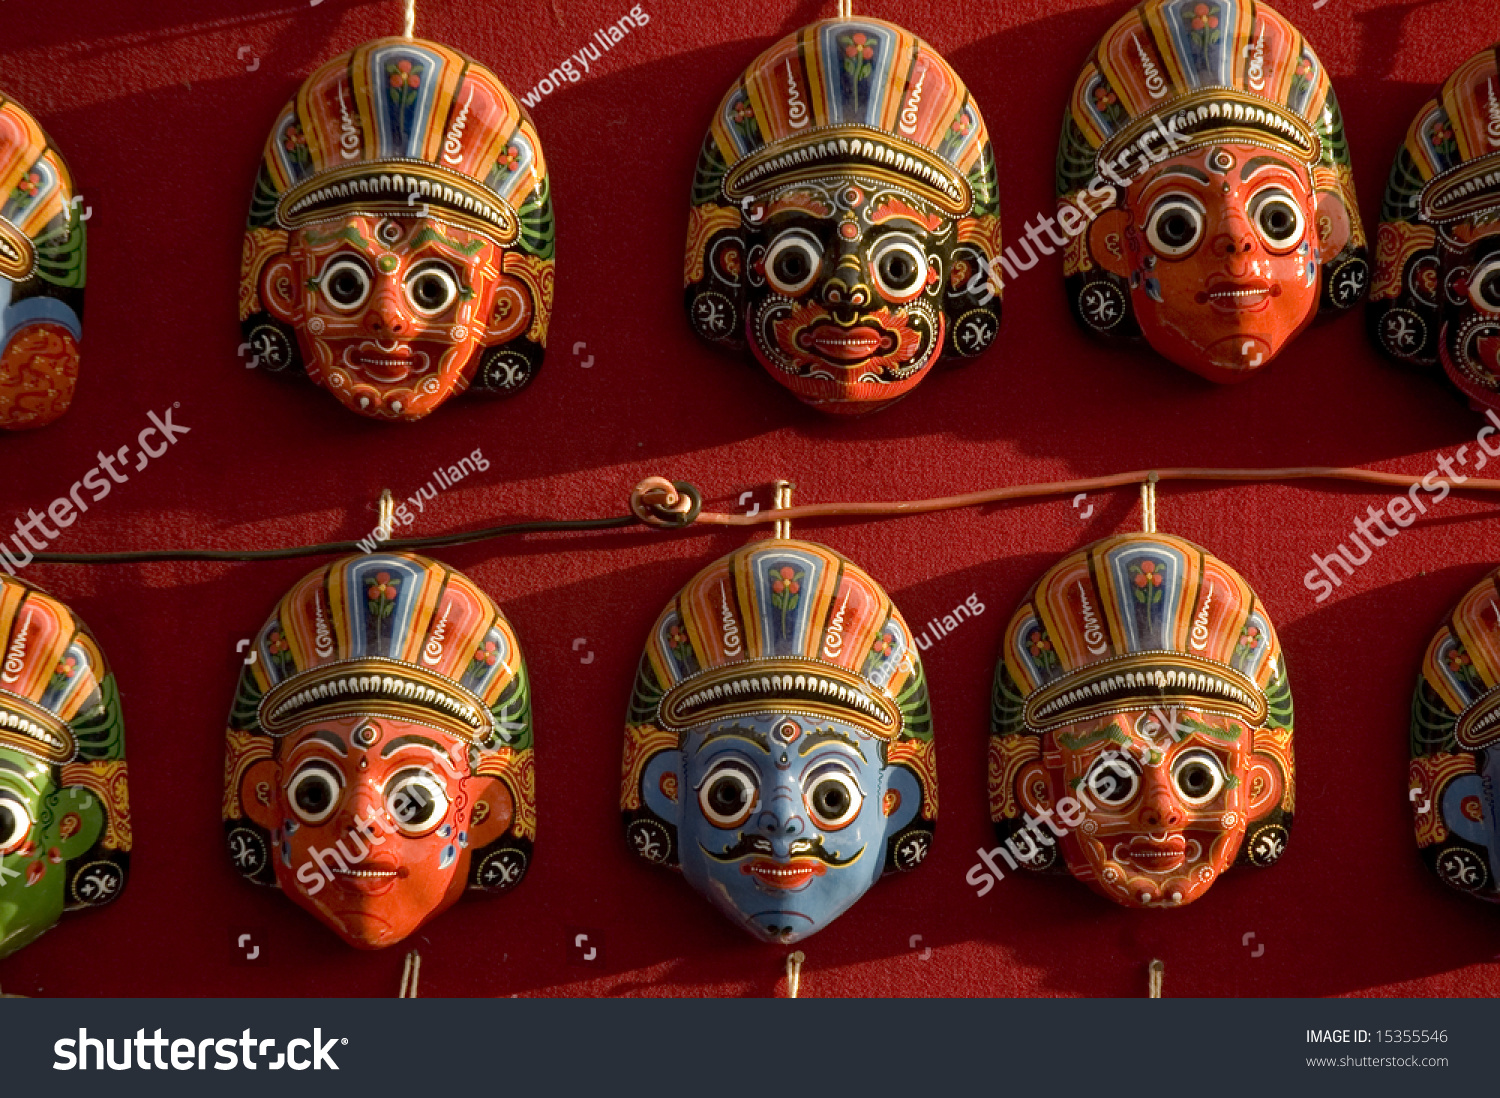 Masks On Wall Bakthapur Nepal Stock Photo (Edit Now) 15355546